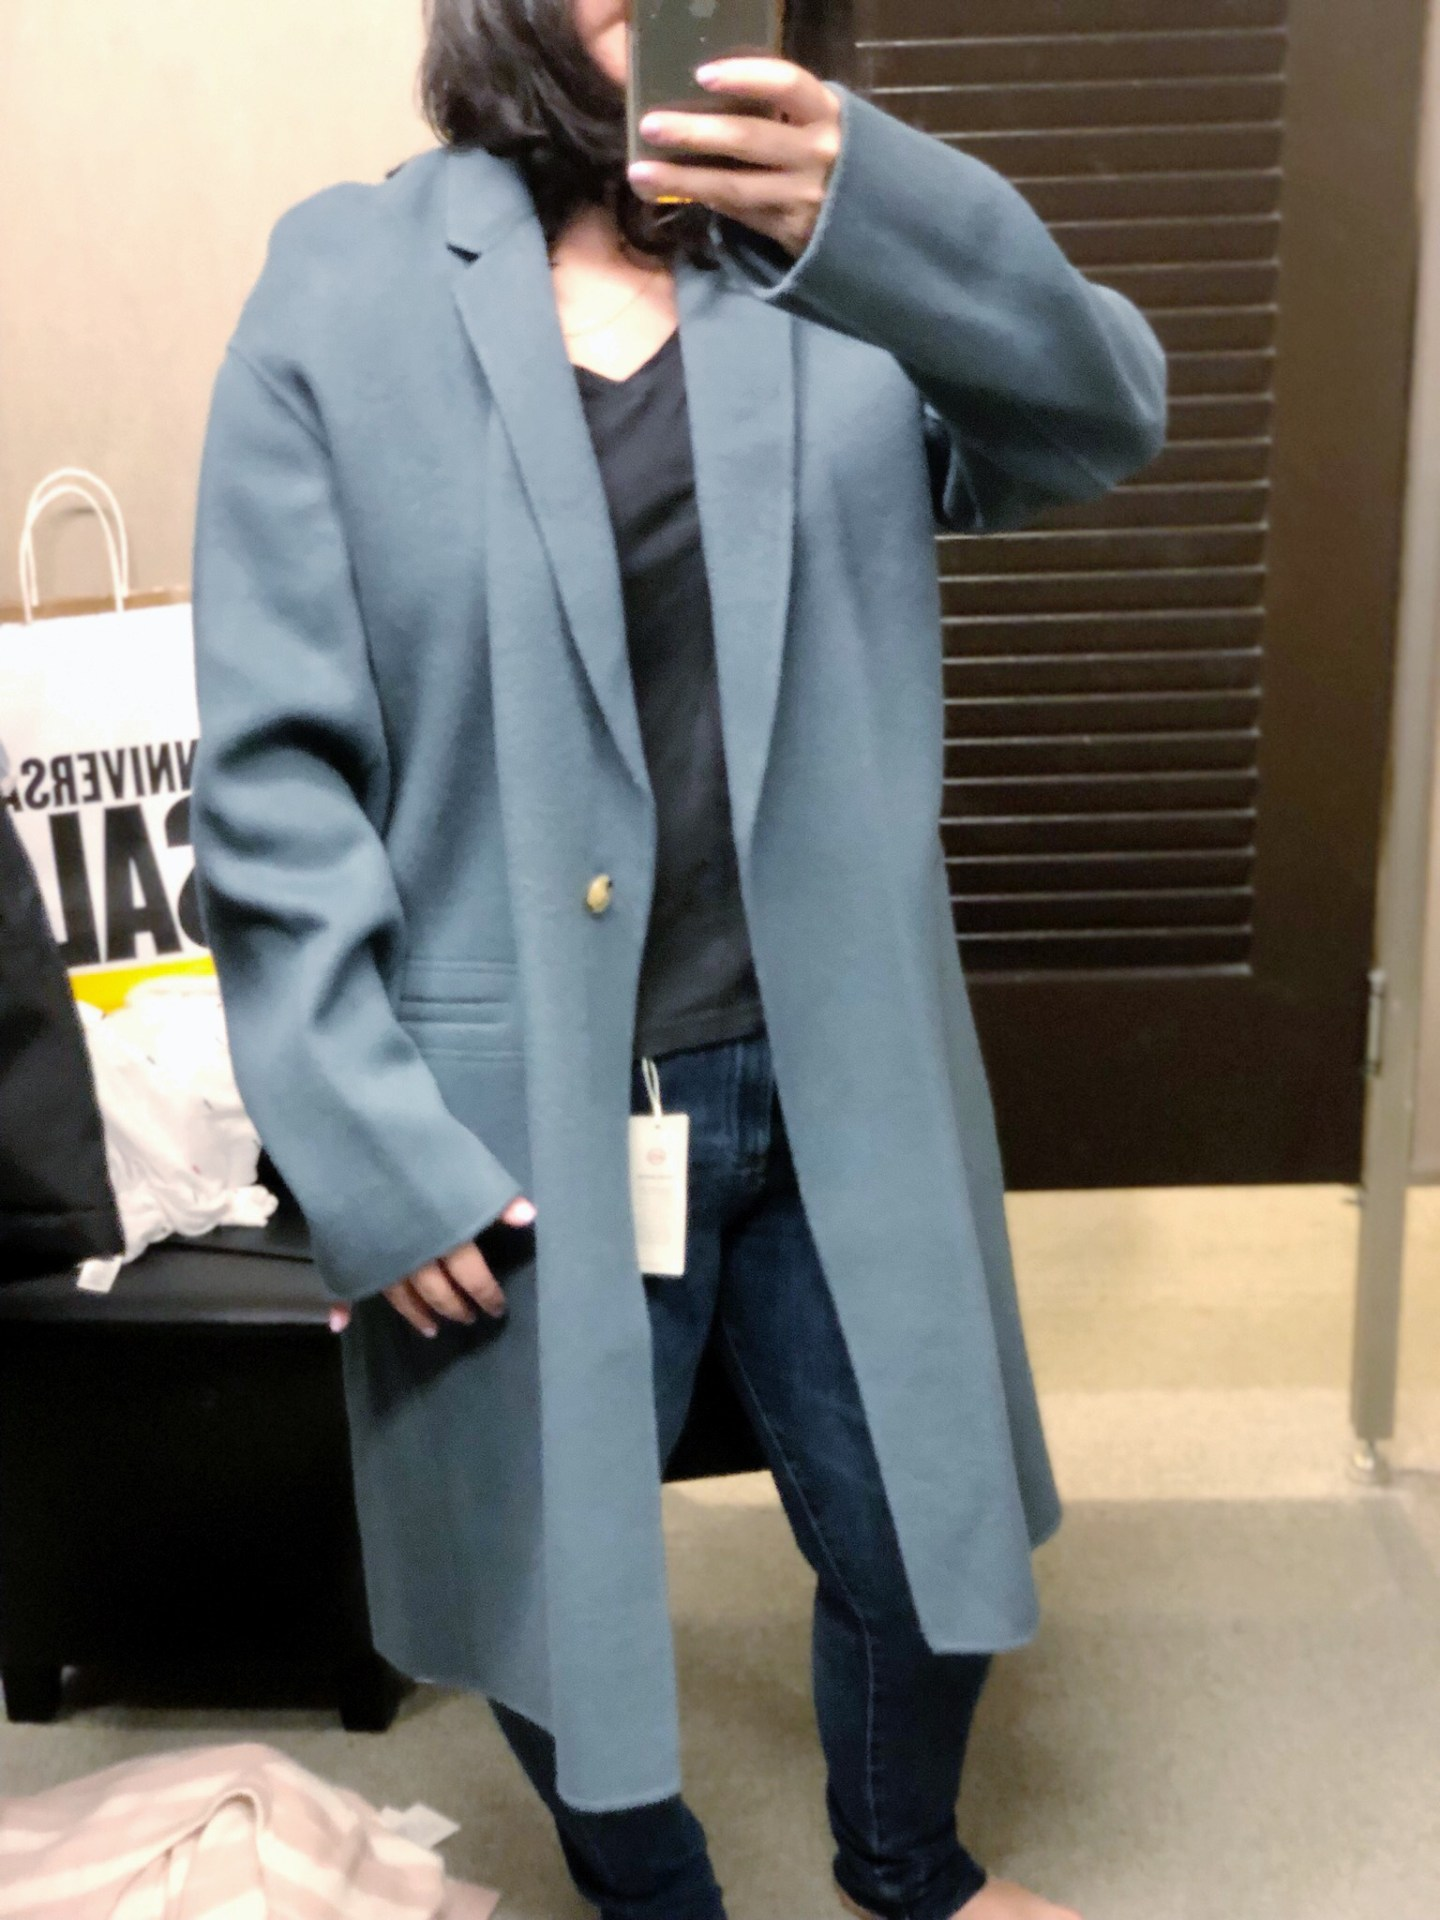 Double Face Wool Blend Coat VINCE, Anniversary Sale 2019, Nordstrom, Anniversary Sale Dressing Room Selfies